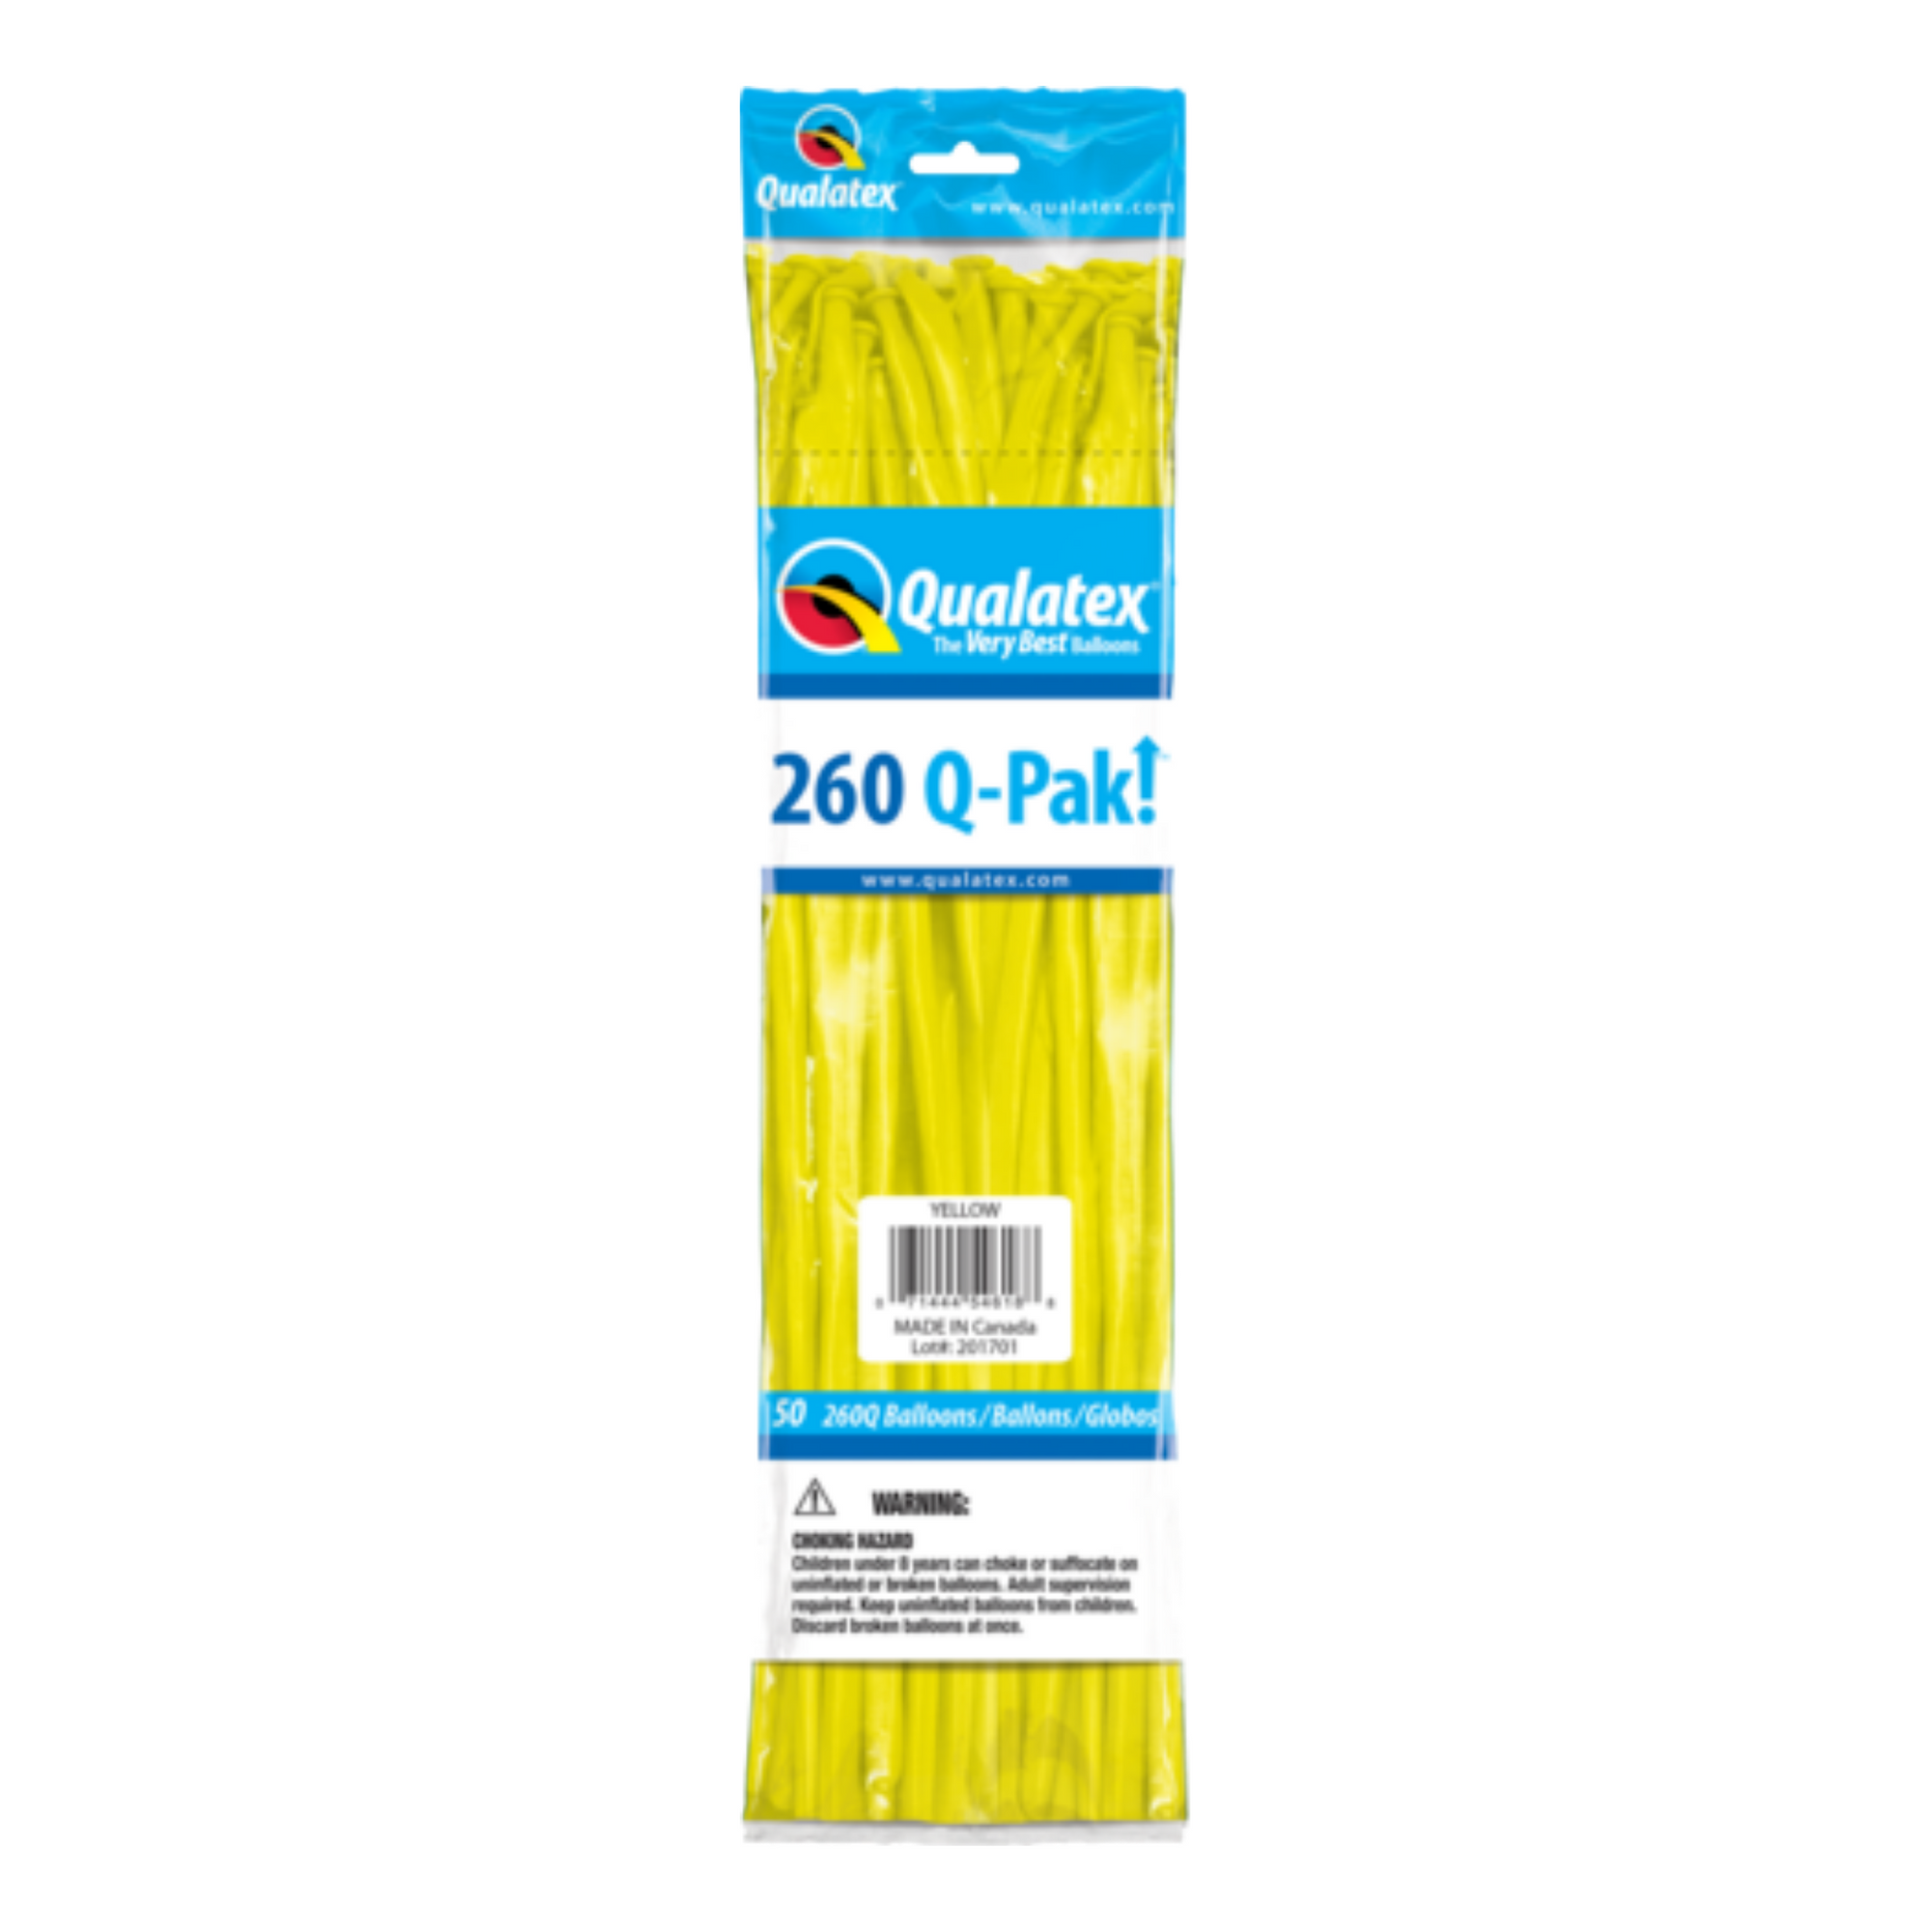 Qualatex 260 Q-Pak (50 pack) YELLOW